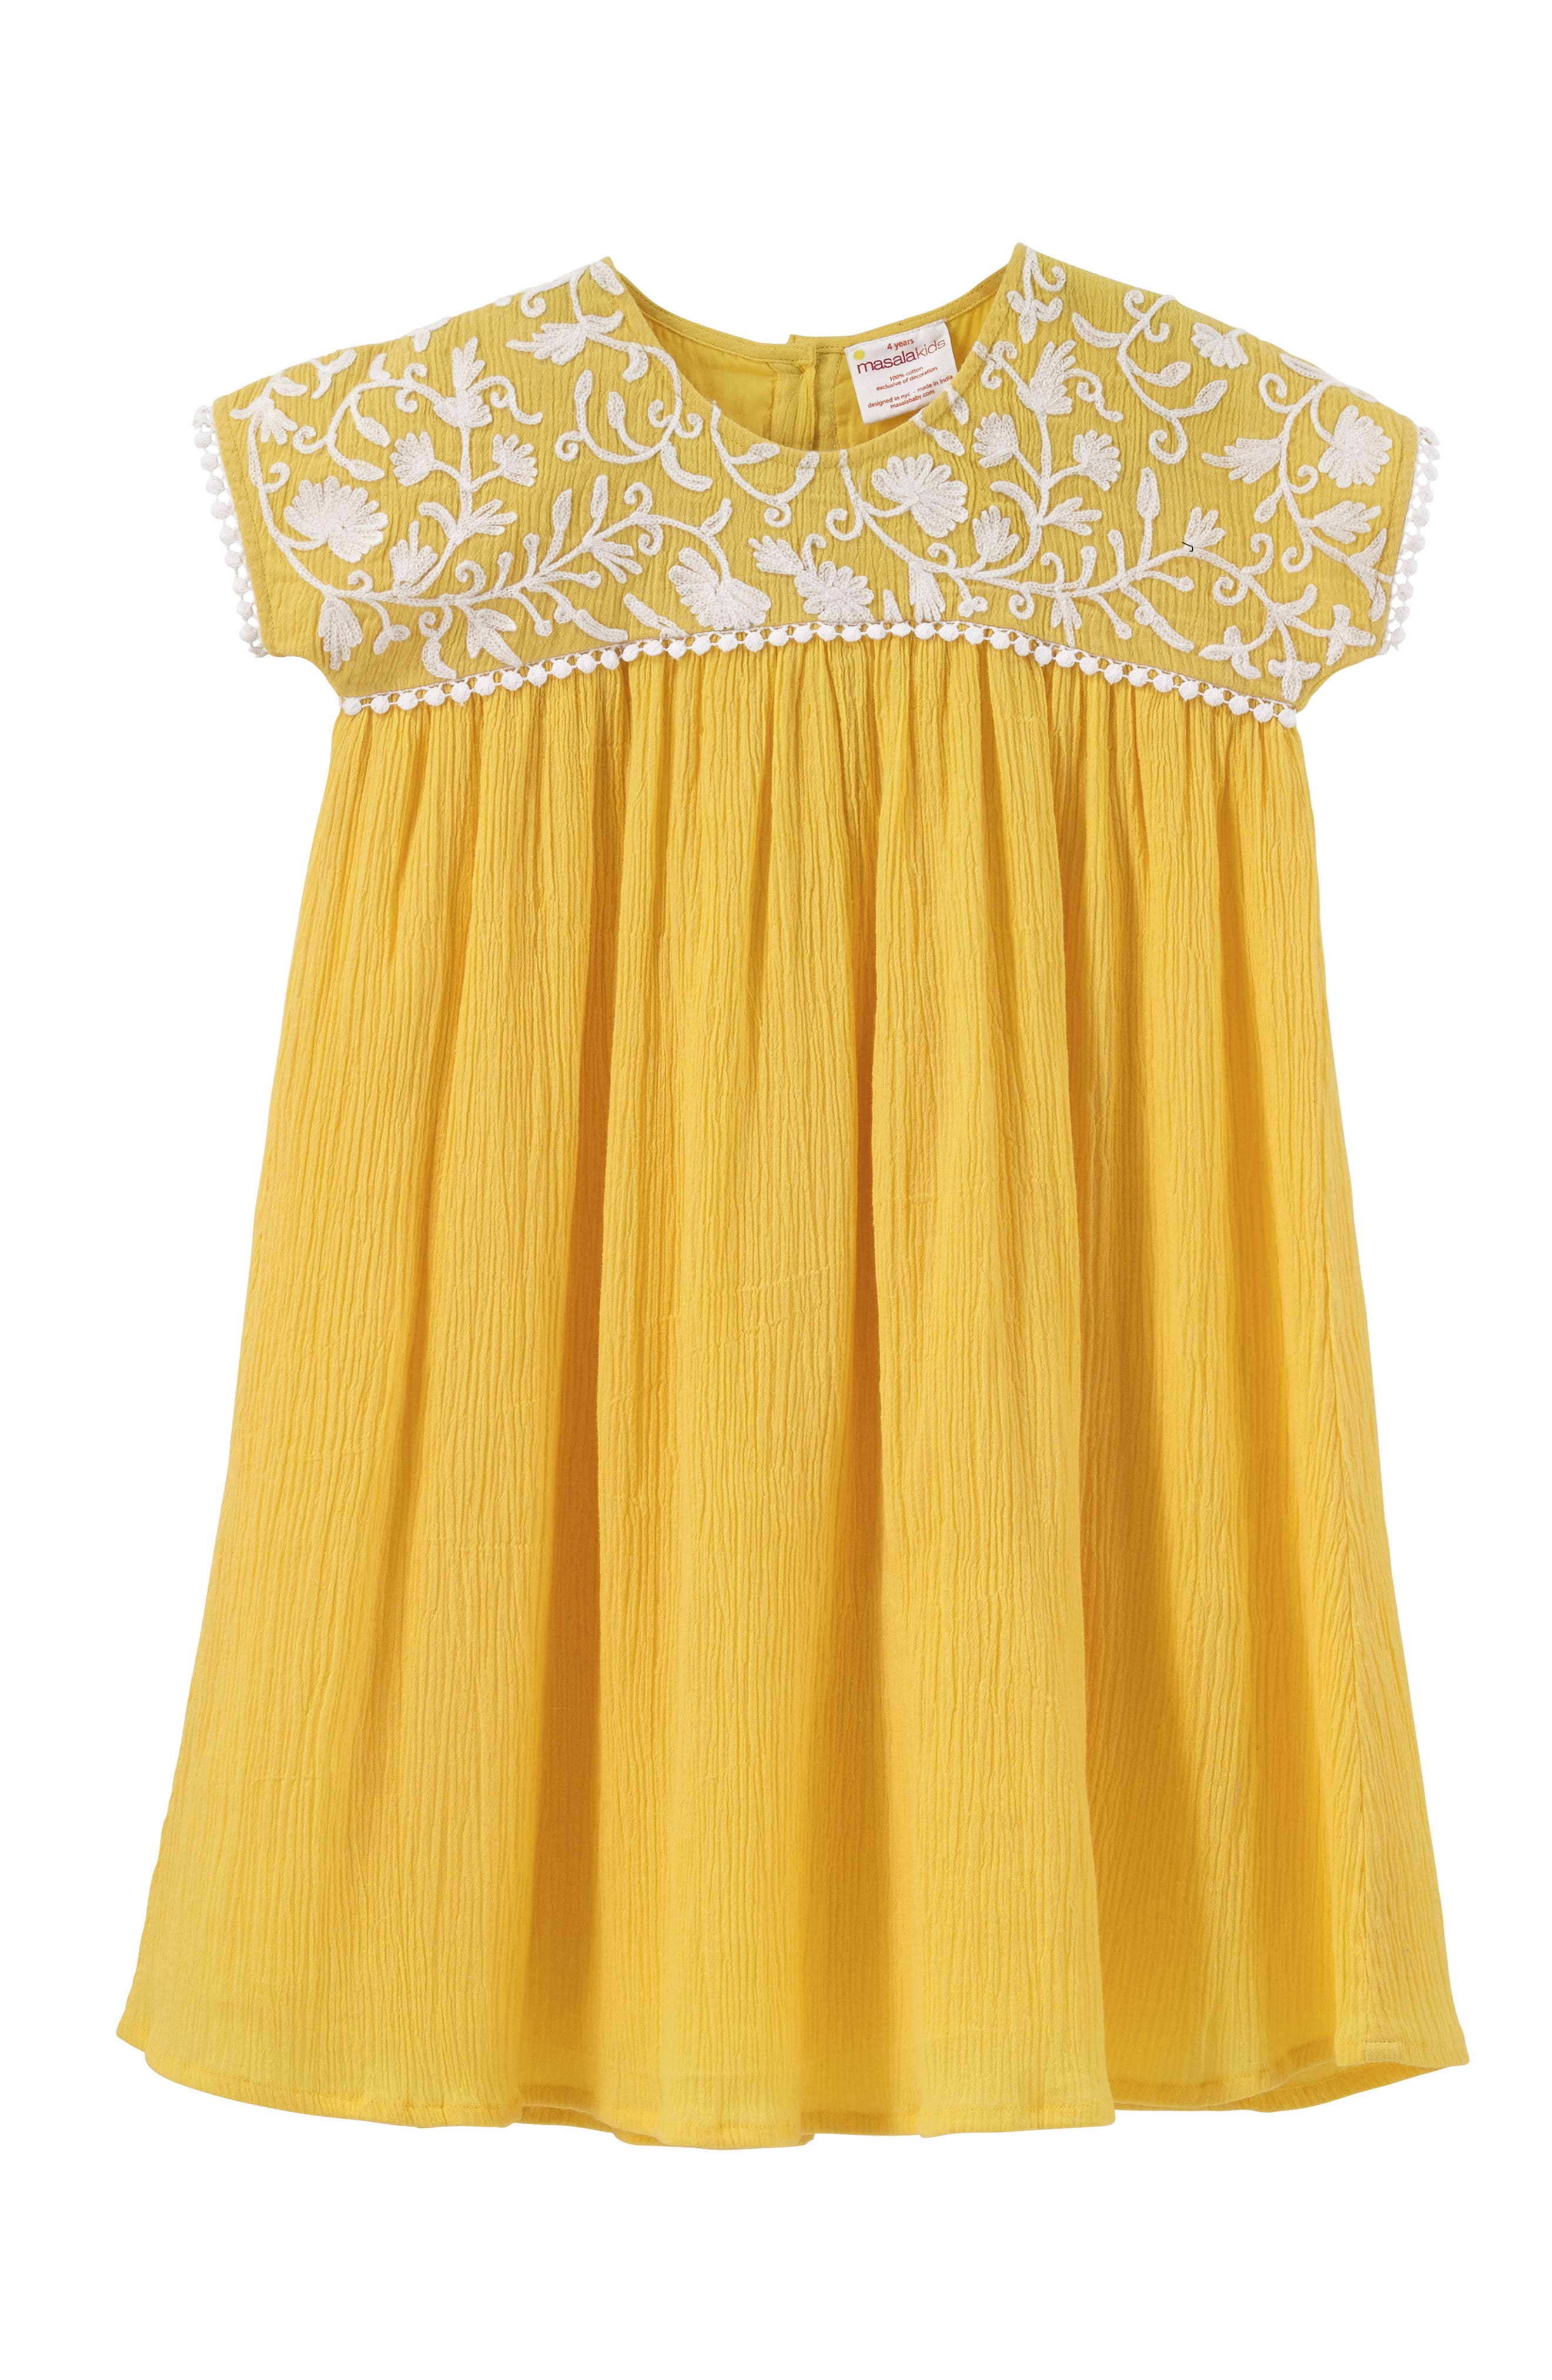 Gia Embroidered Dress,                             Main thumbnail 1, color,                             700